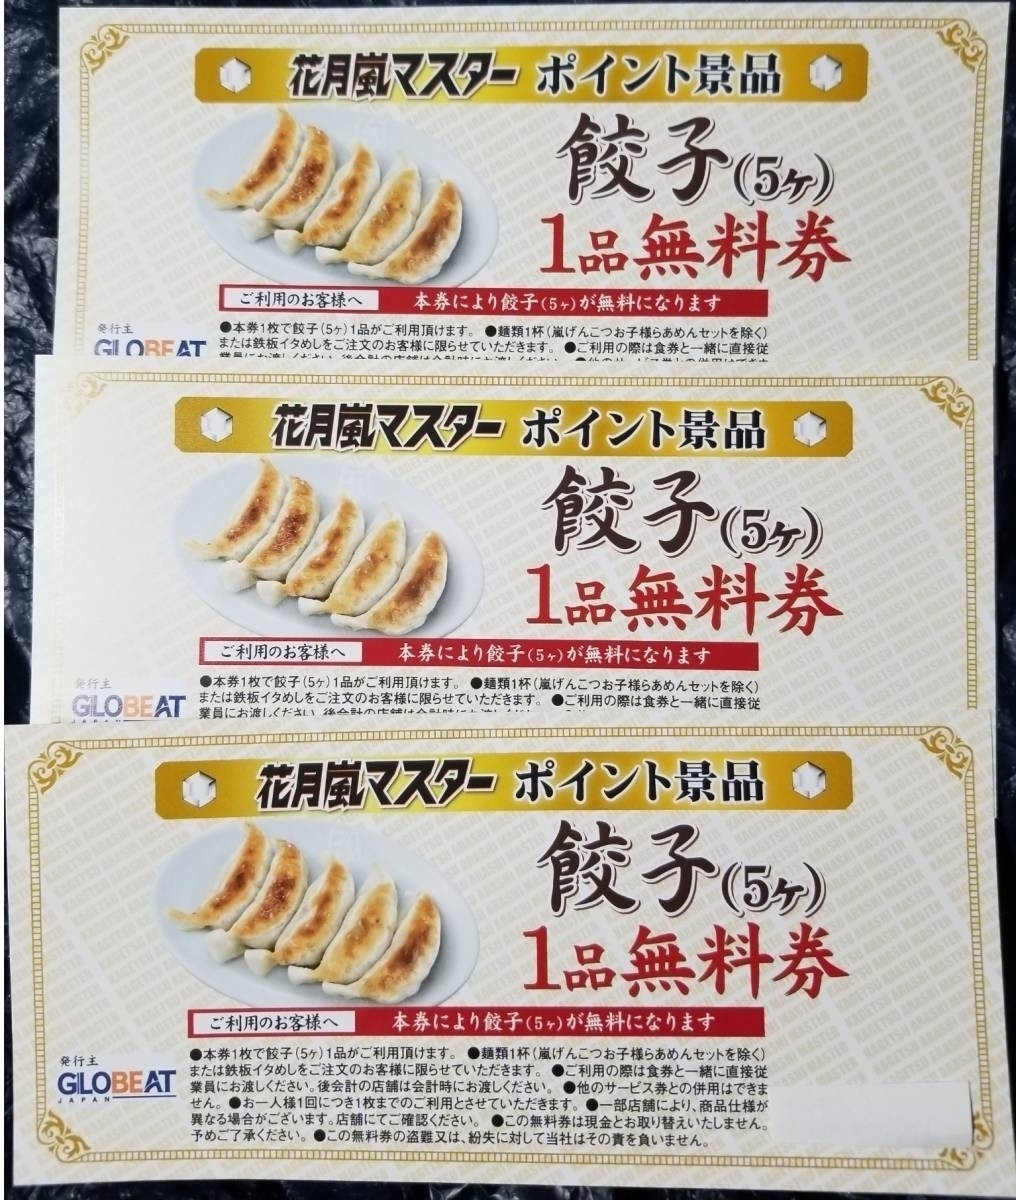 You for Kagetsu storm master dumplings 5 pieces free ticket×3 Piece Set shipping 63 yen from the stock multiple would different ramen